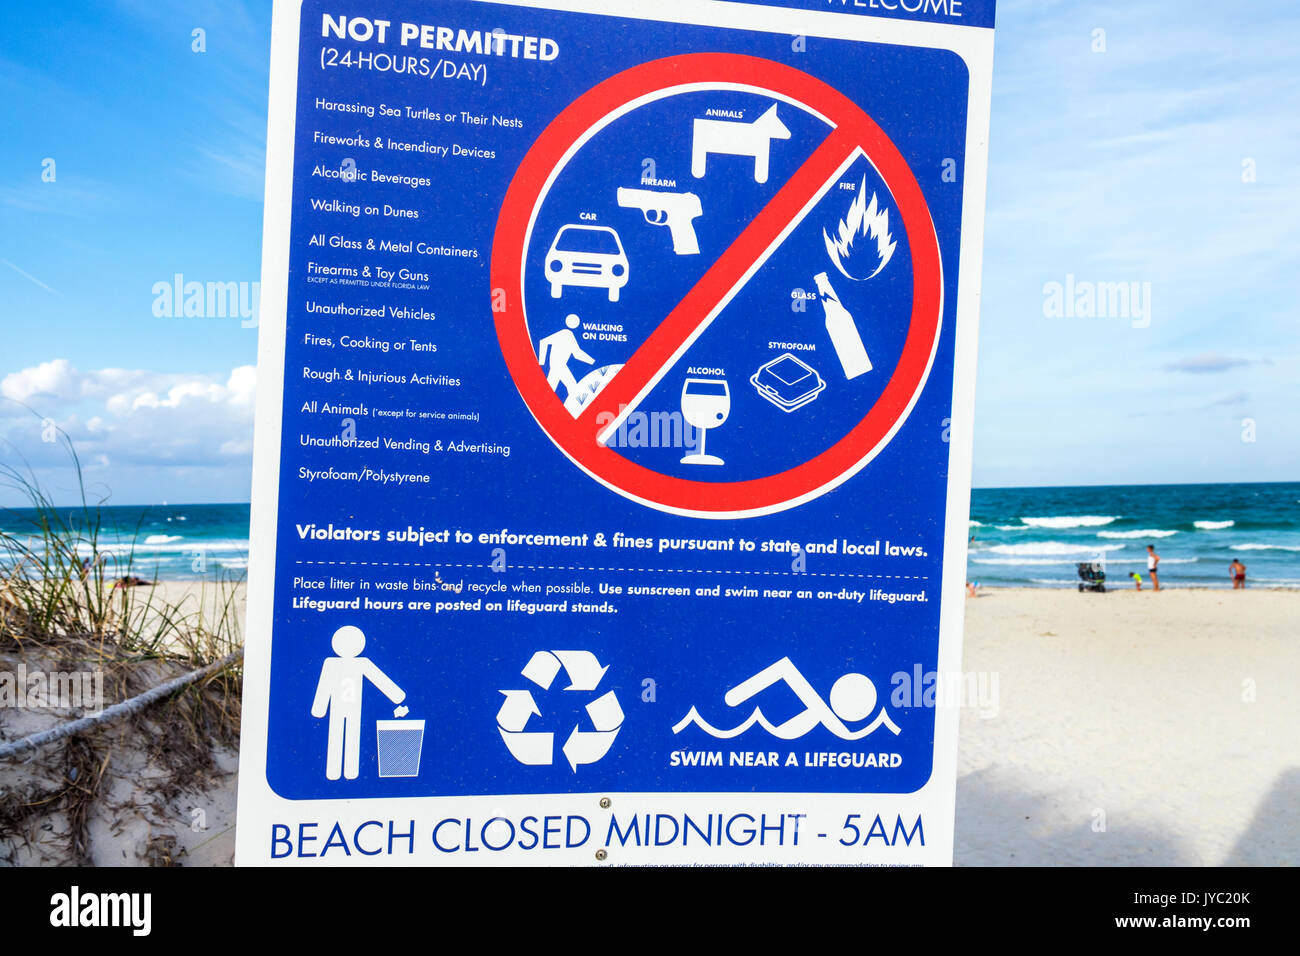 Miami Beach Florida regulatory sign warning not permitted drinking